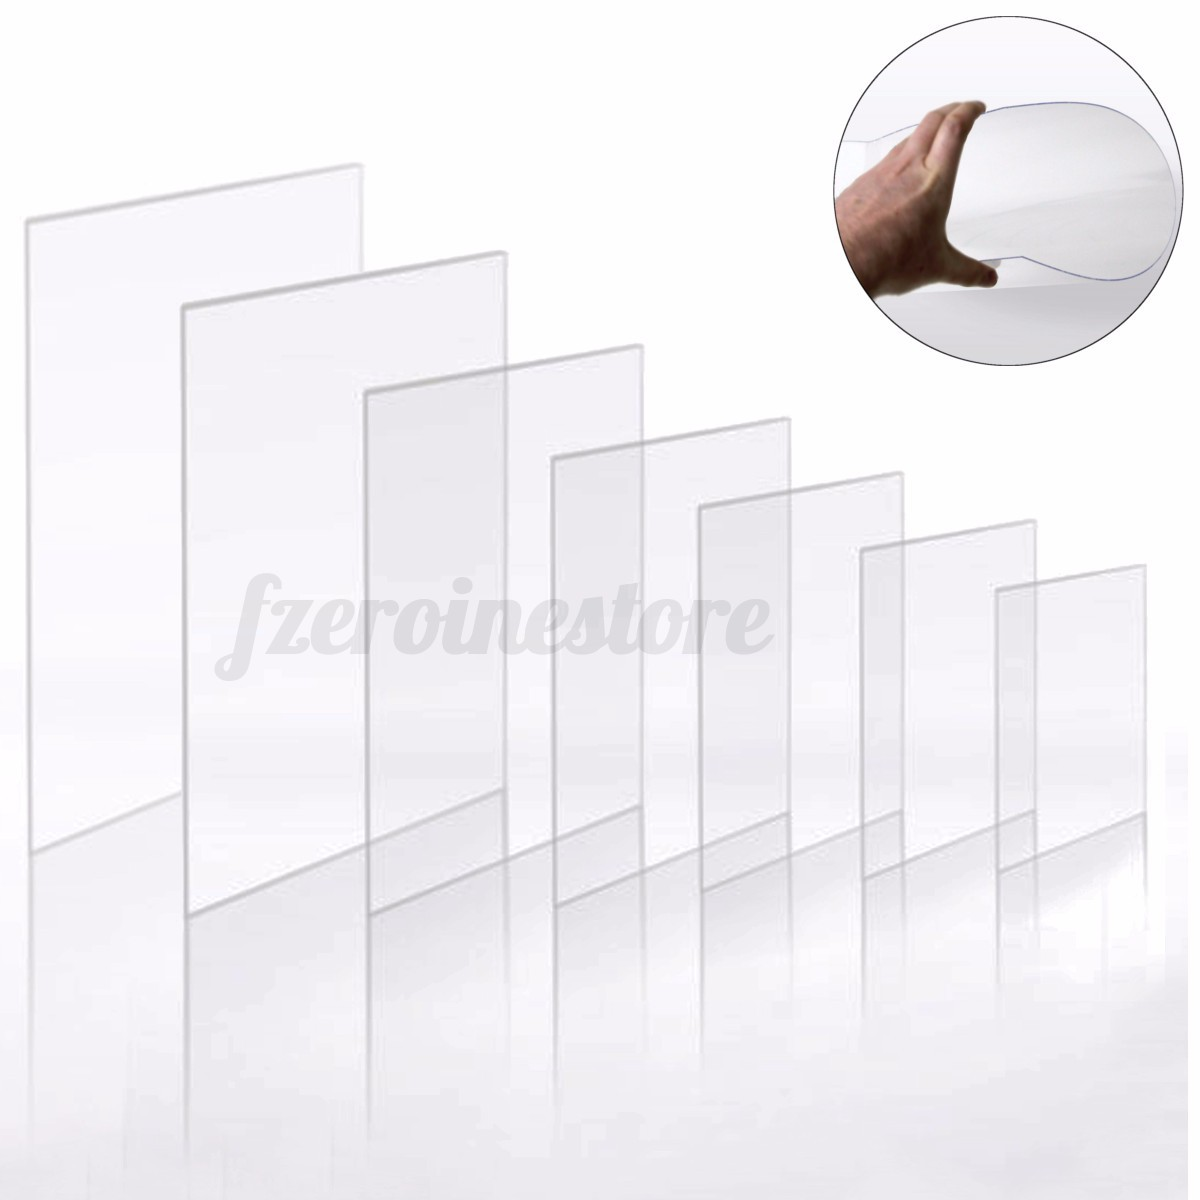 Clear acrylic perspex flexi sheet thick crafts arts for Clear plastic sheets for crafts